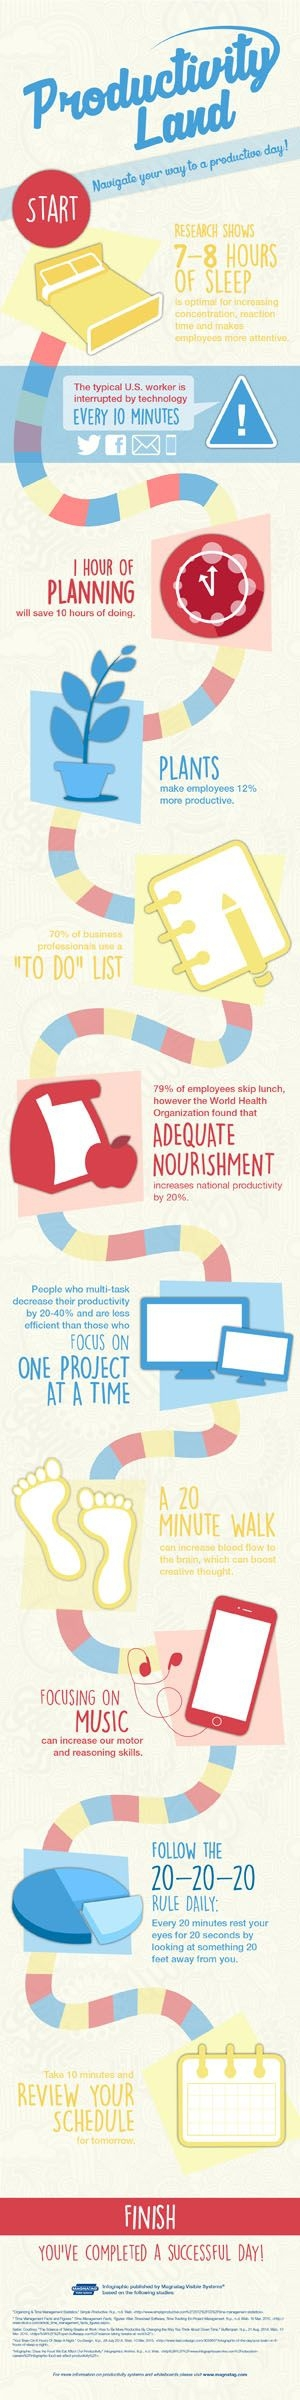 Navigate Your Way to a Productive Day